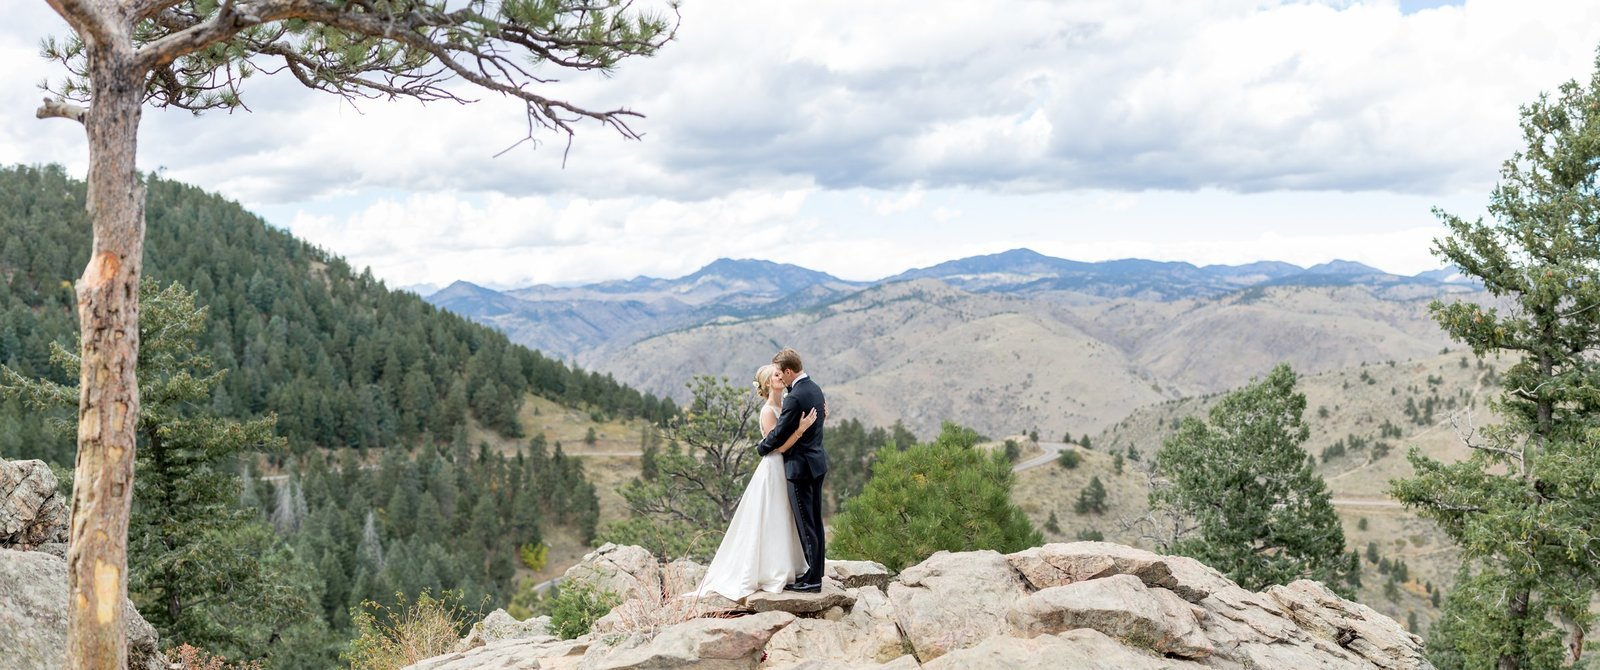 Colorado, Nebraska, Wyoming Wedding Photographer-61